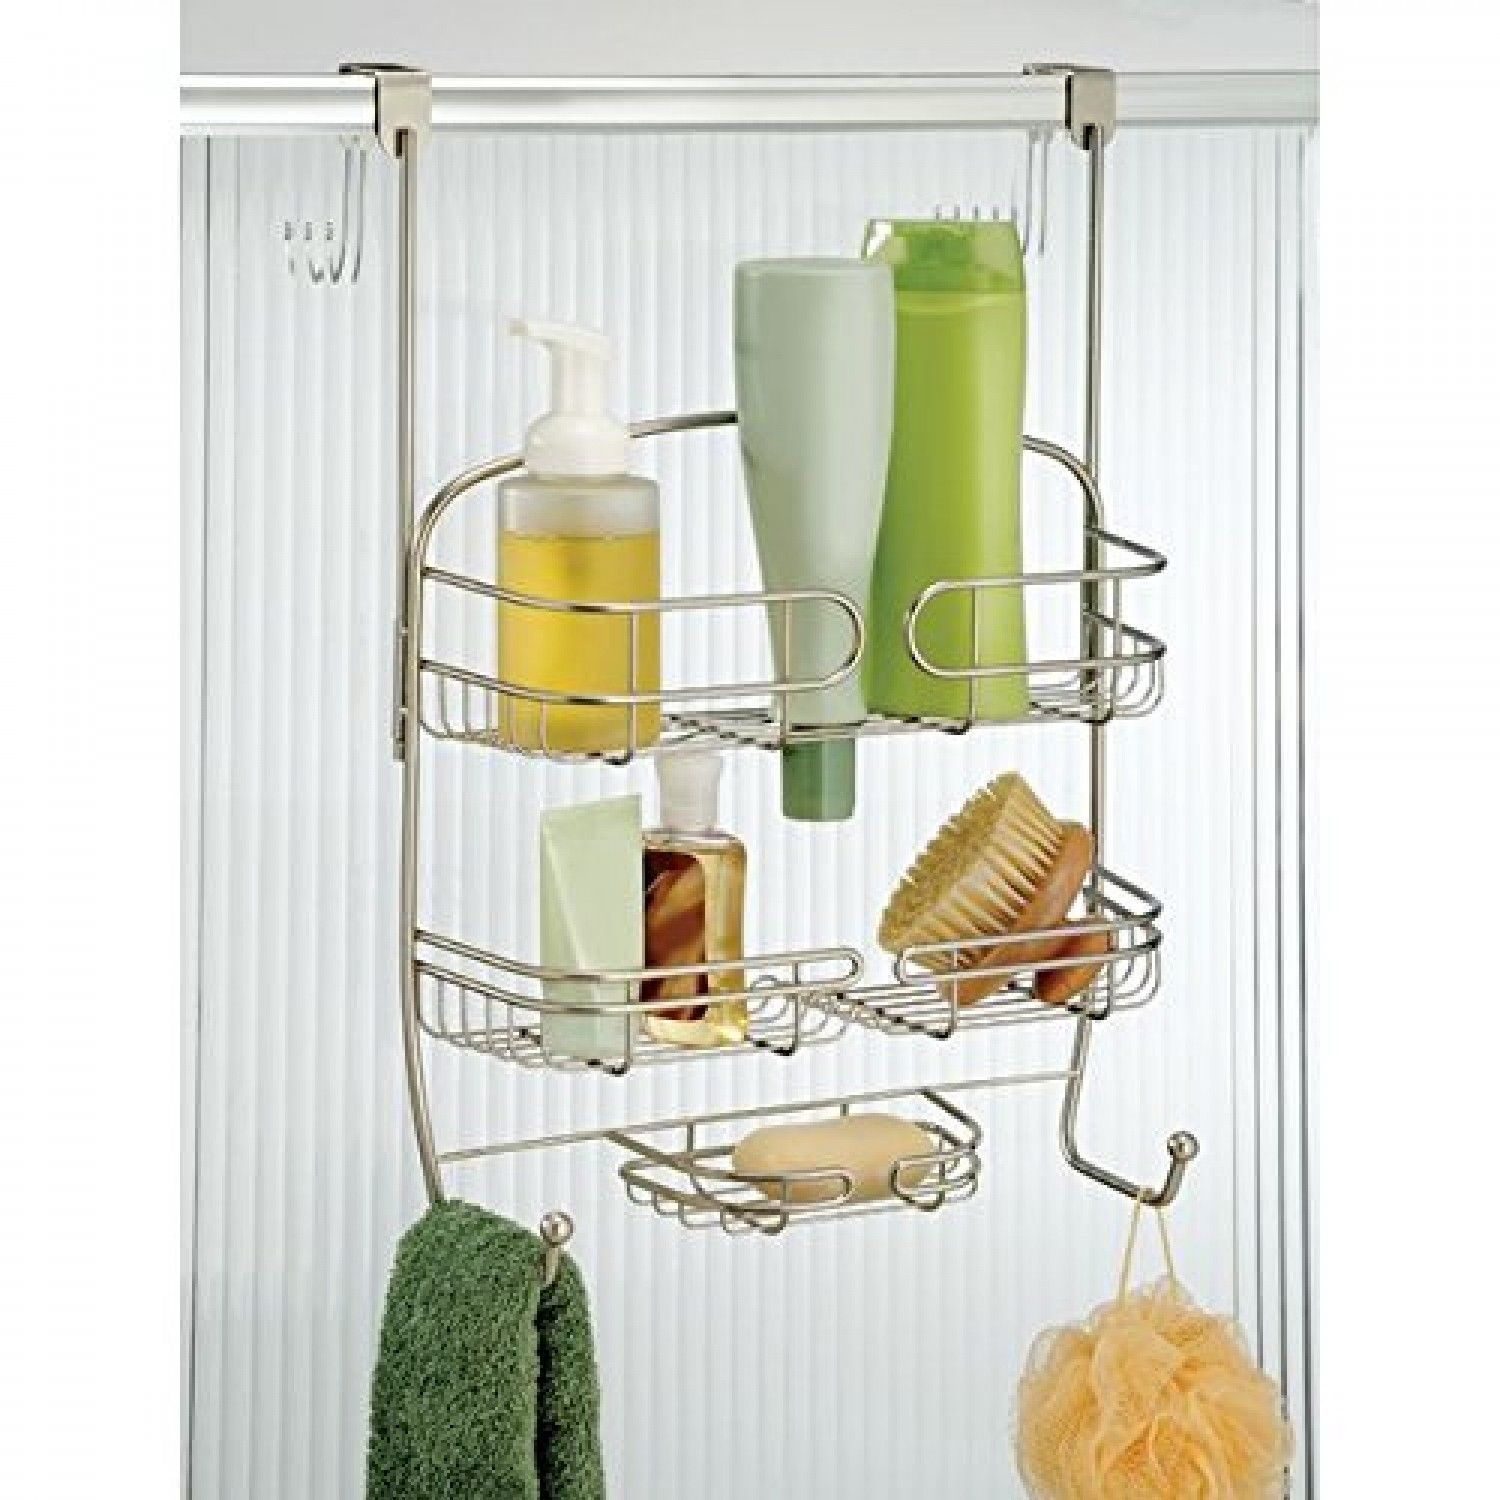 Hook Over Shower Caddy Door Hanger Organizer and 50 similar items